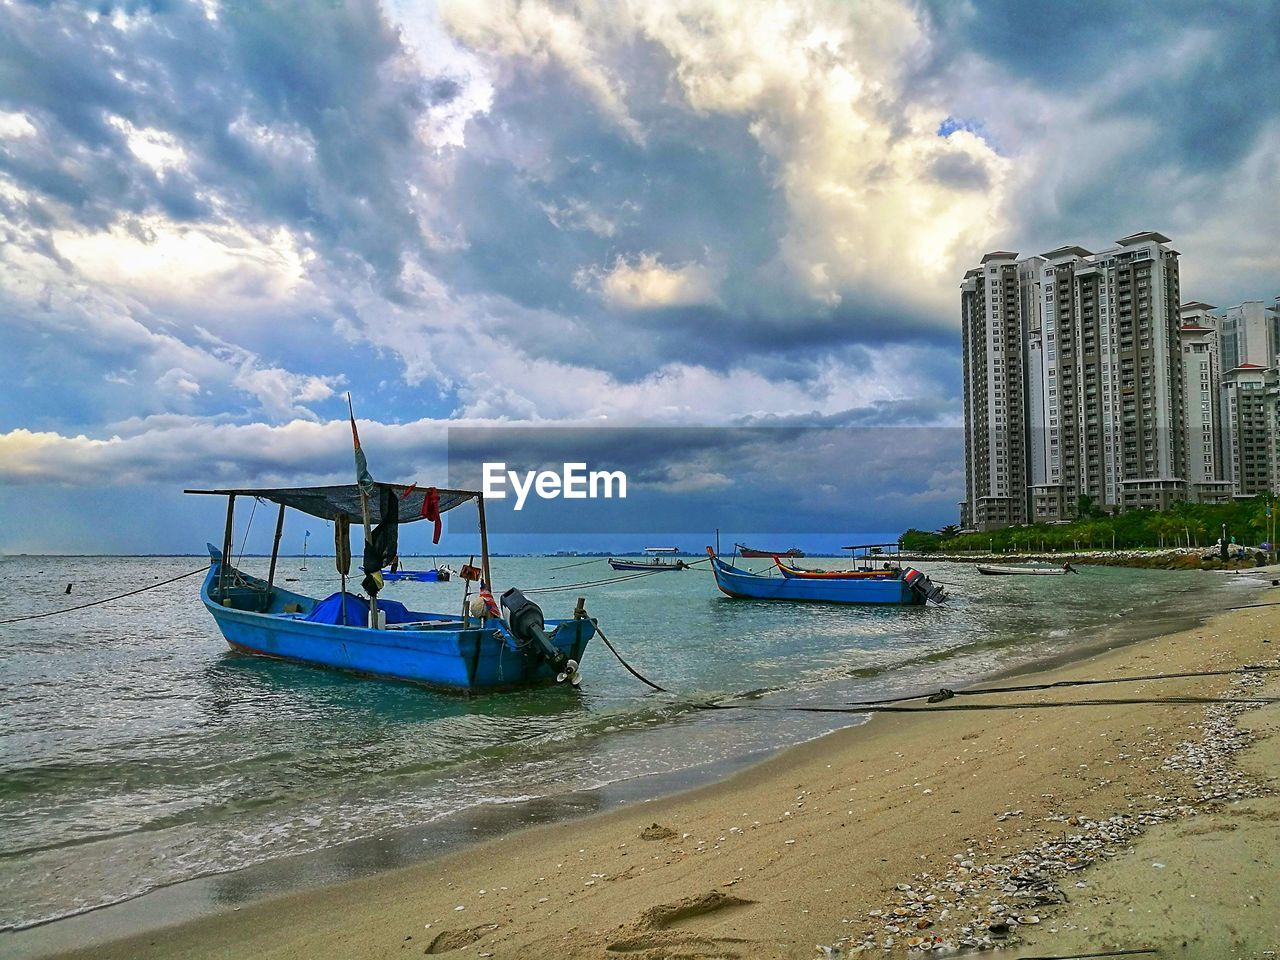 transportation, nautical vessel, sea, beach, sky, mode of transport, cloud - sky, water, moored, nature, outdoors, sand, day, no people, city